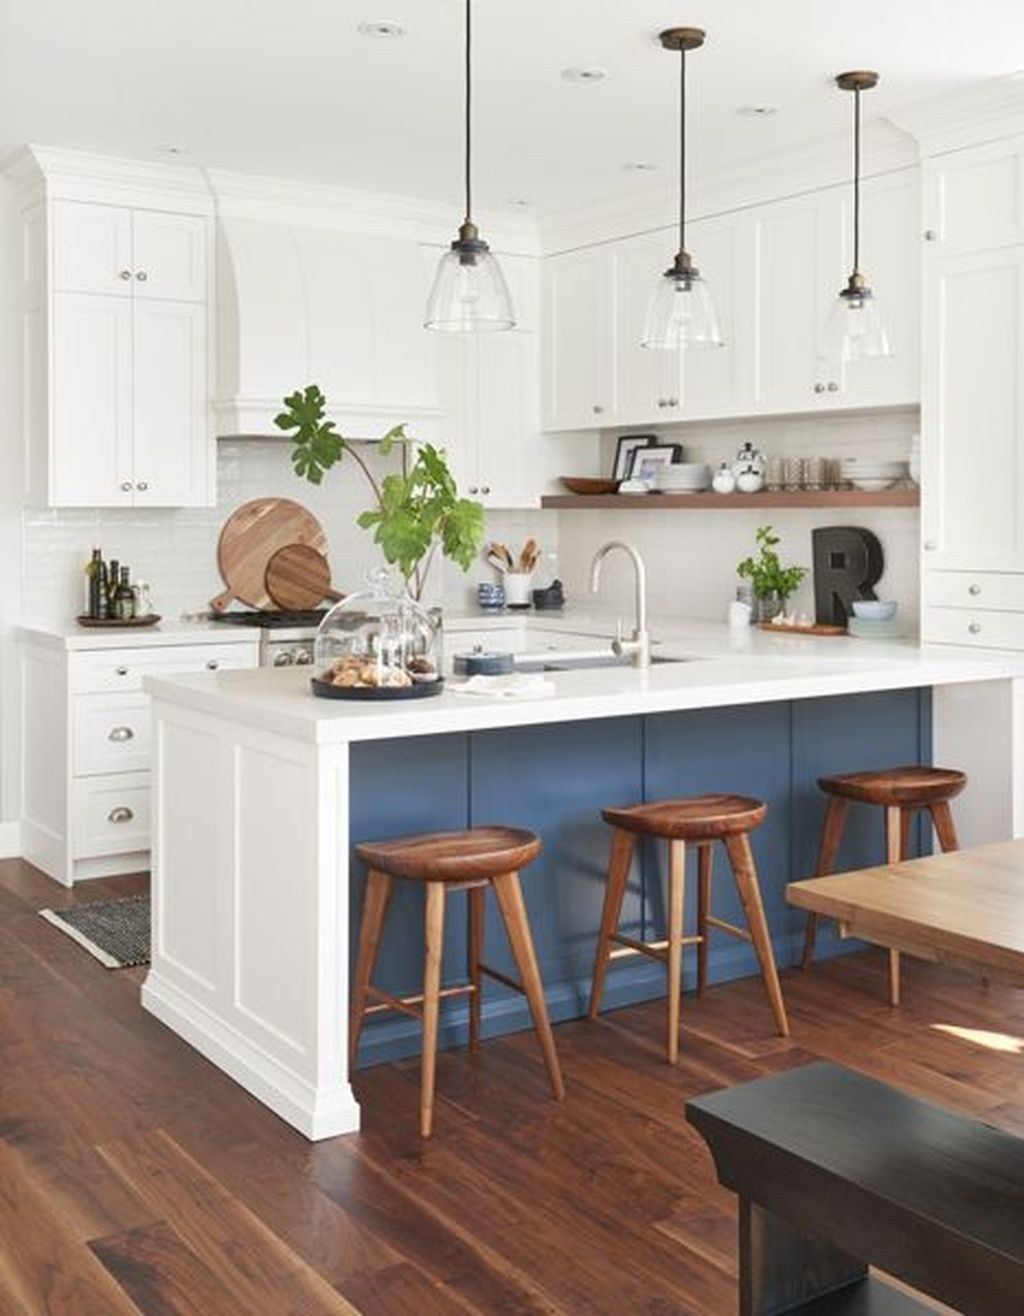 20+ Tips On Decorating Small Kitchen #kitchenremodelideas